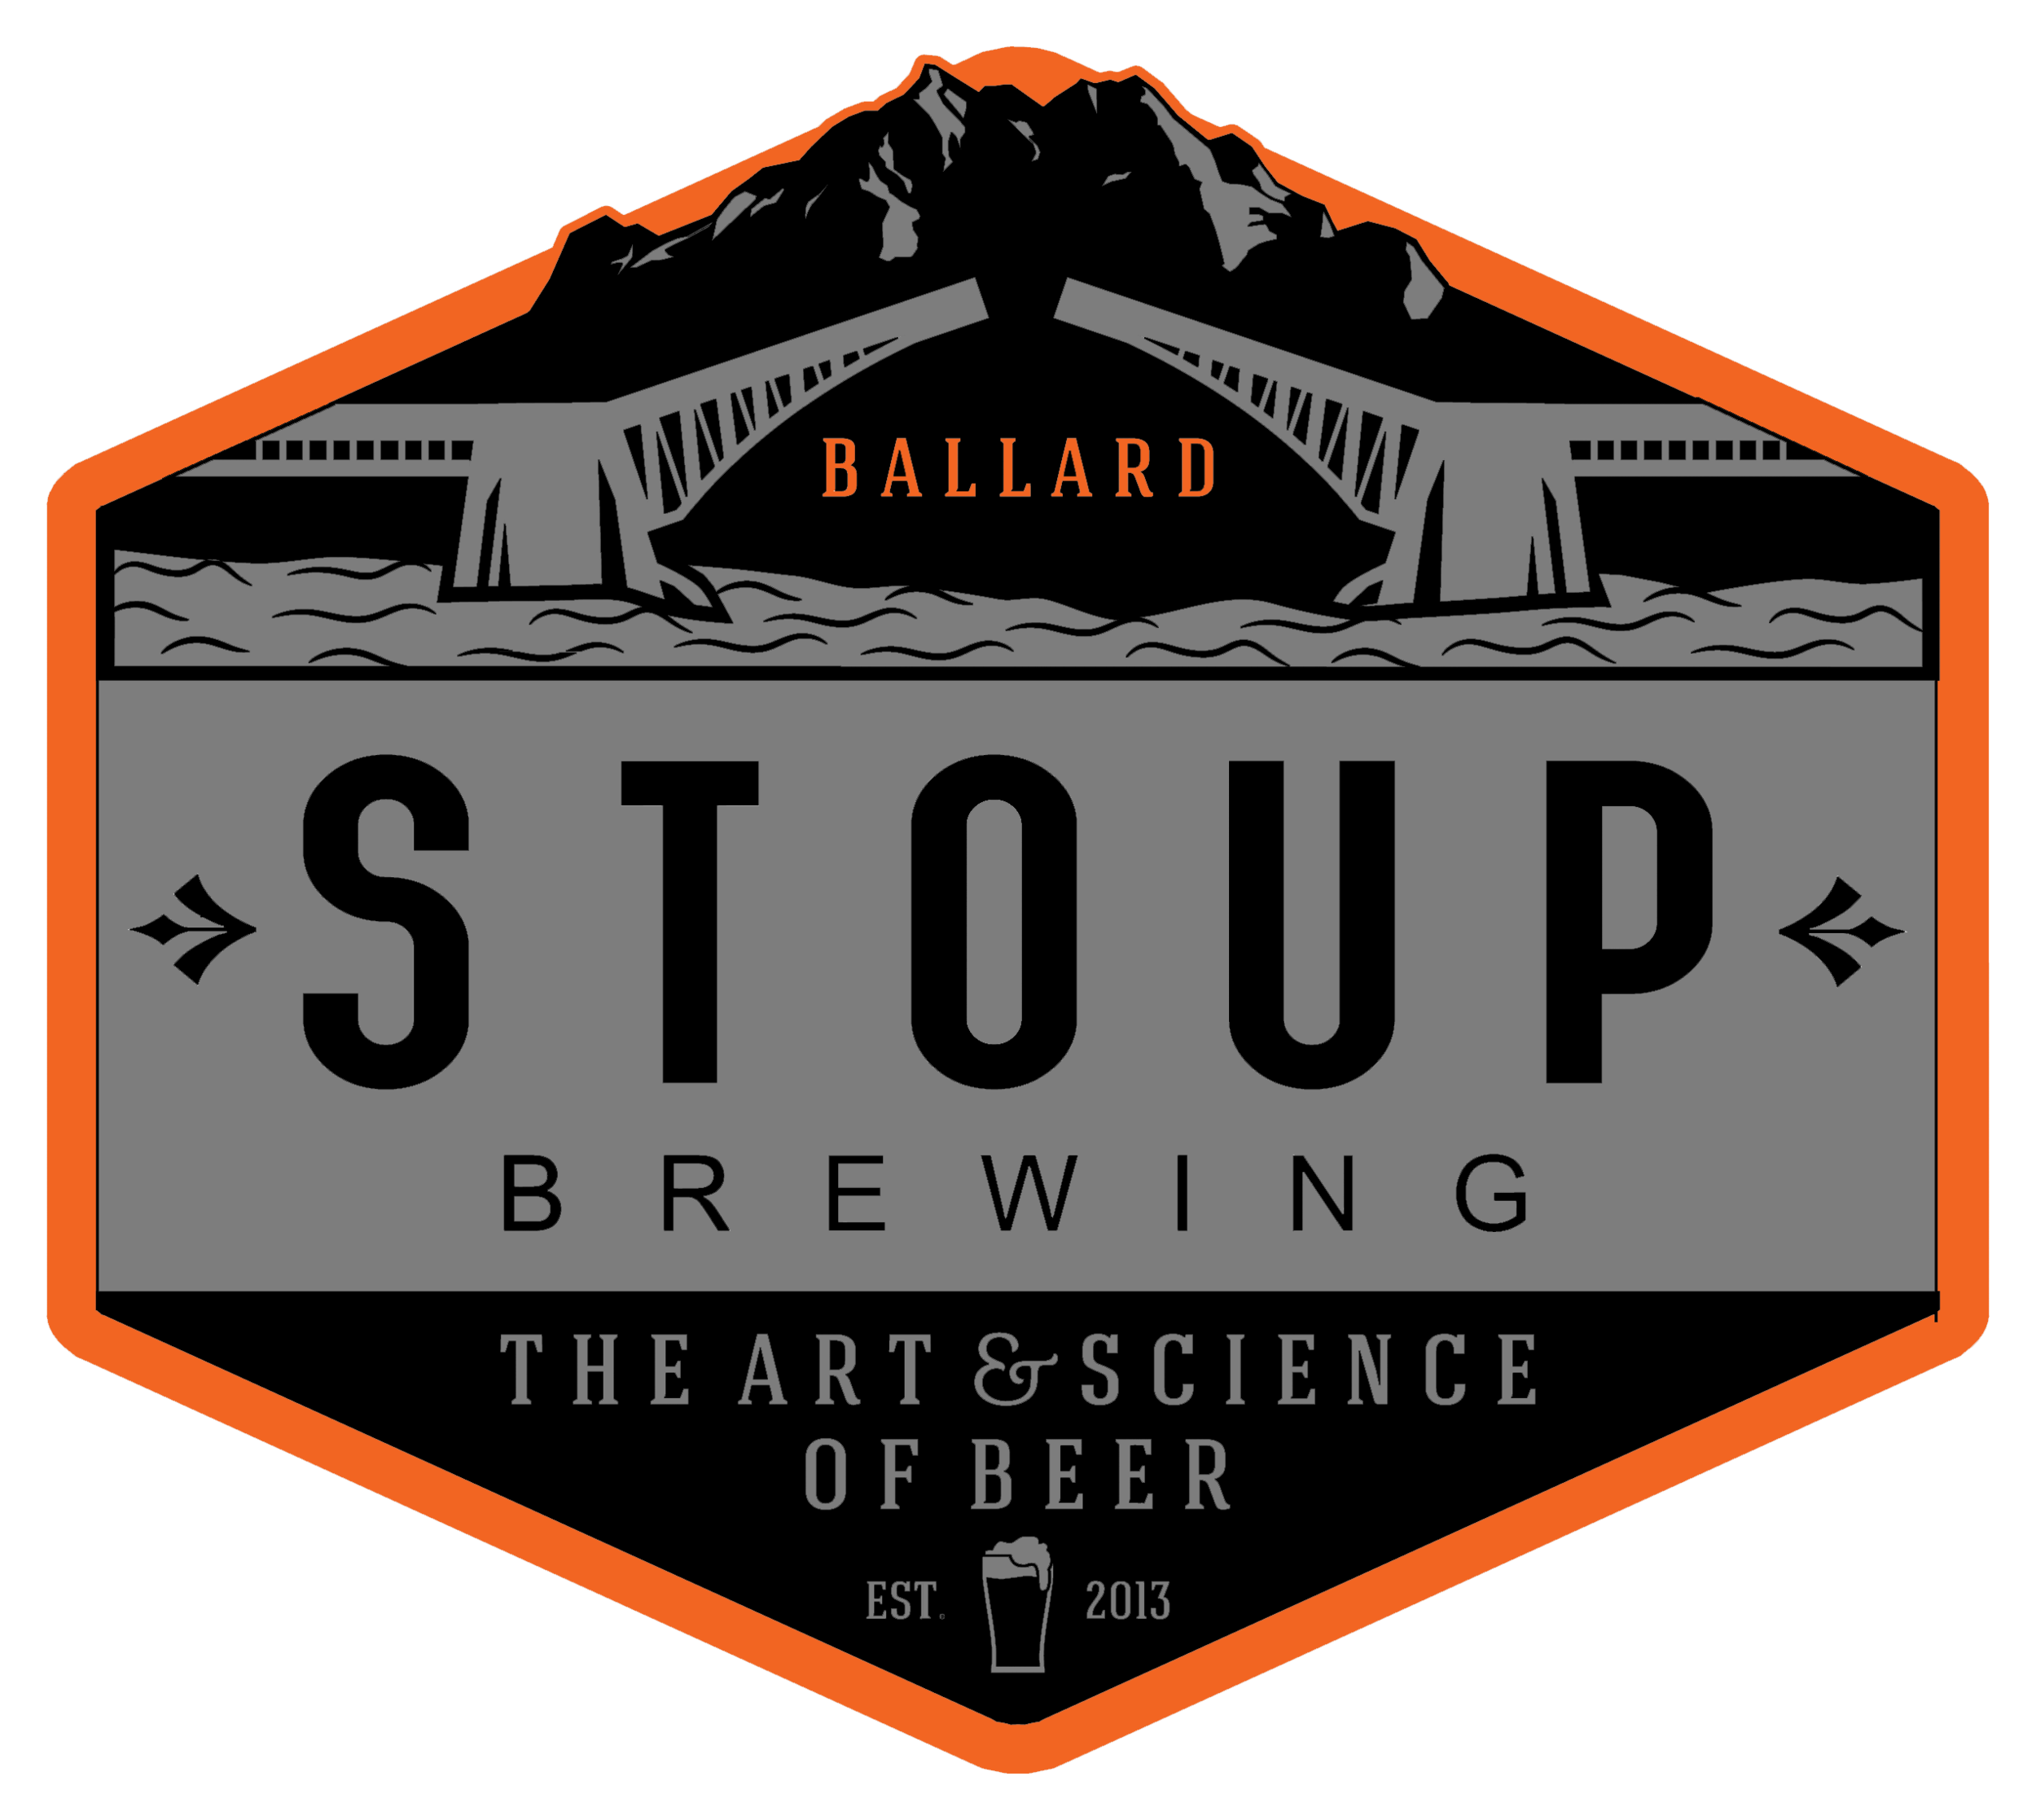 image courtesy Stoup Brewing Company